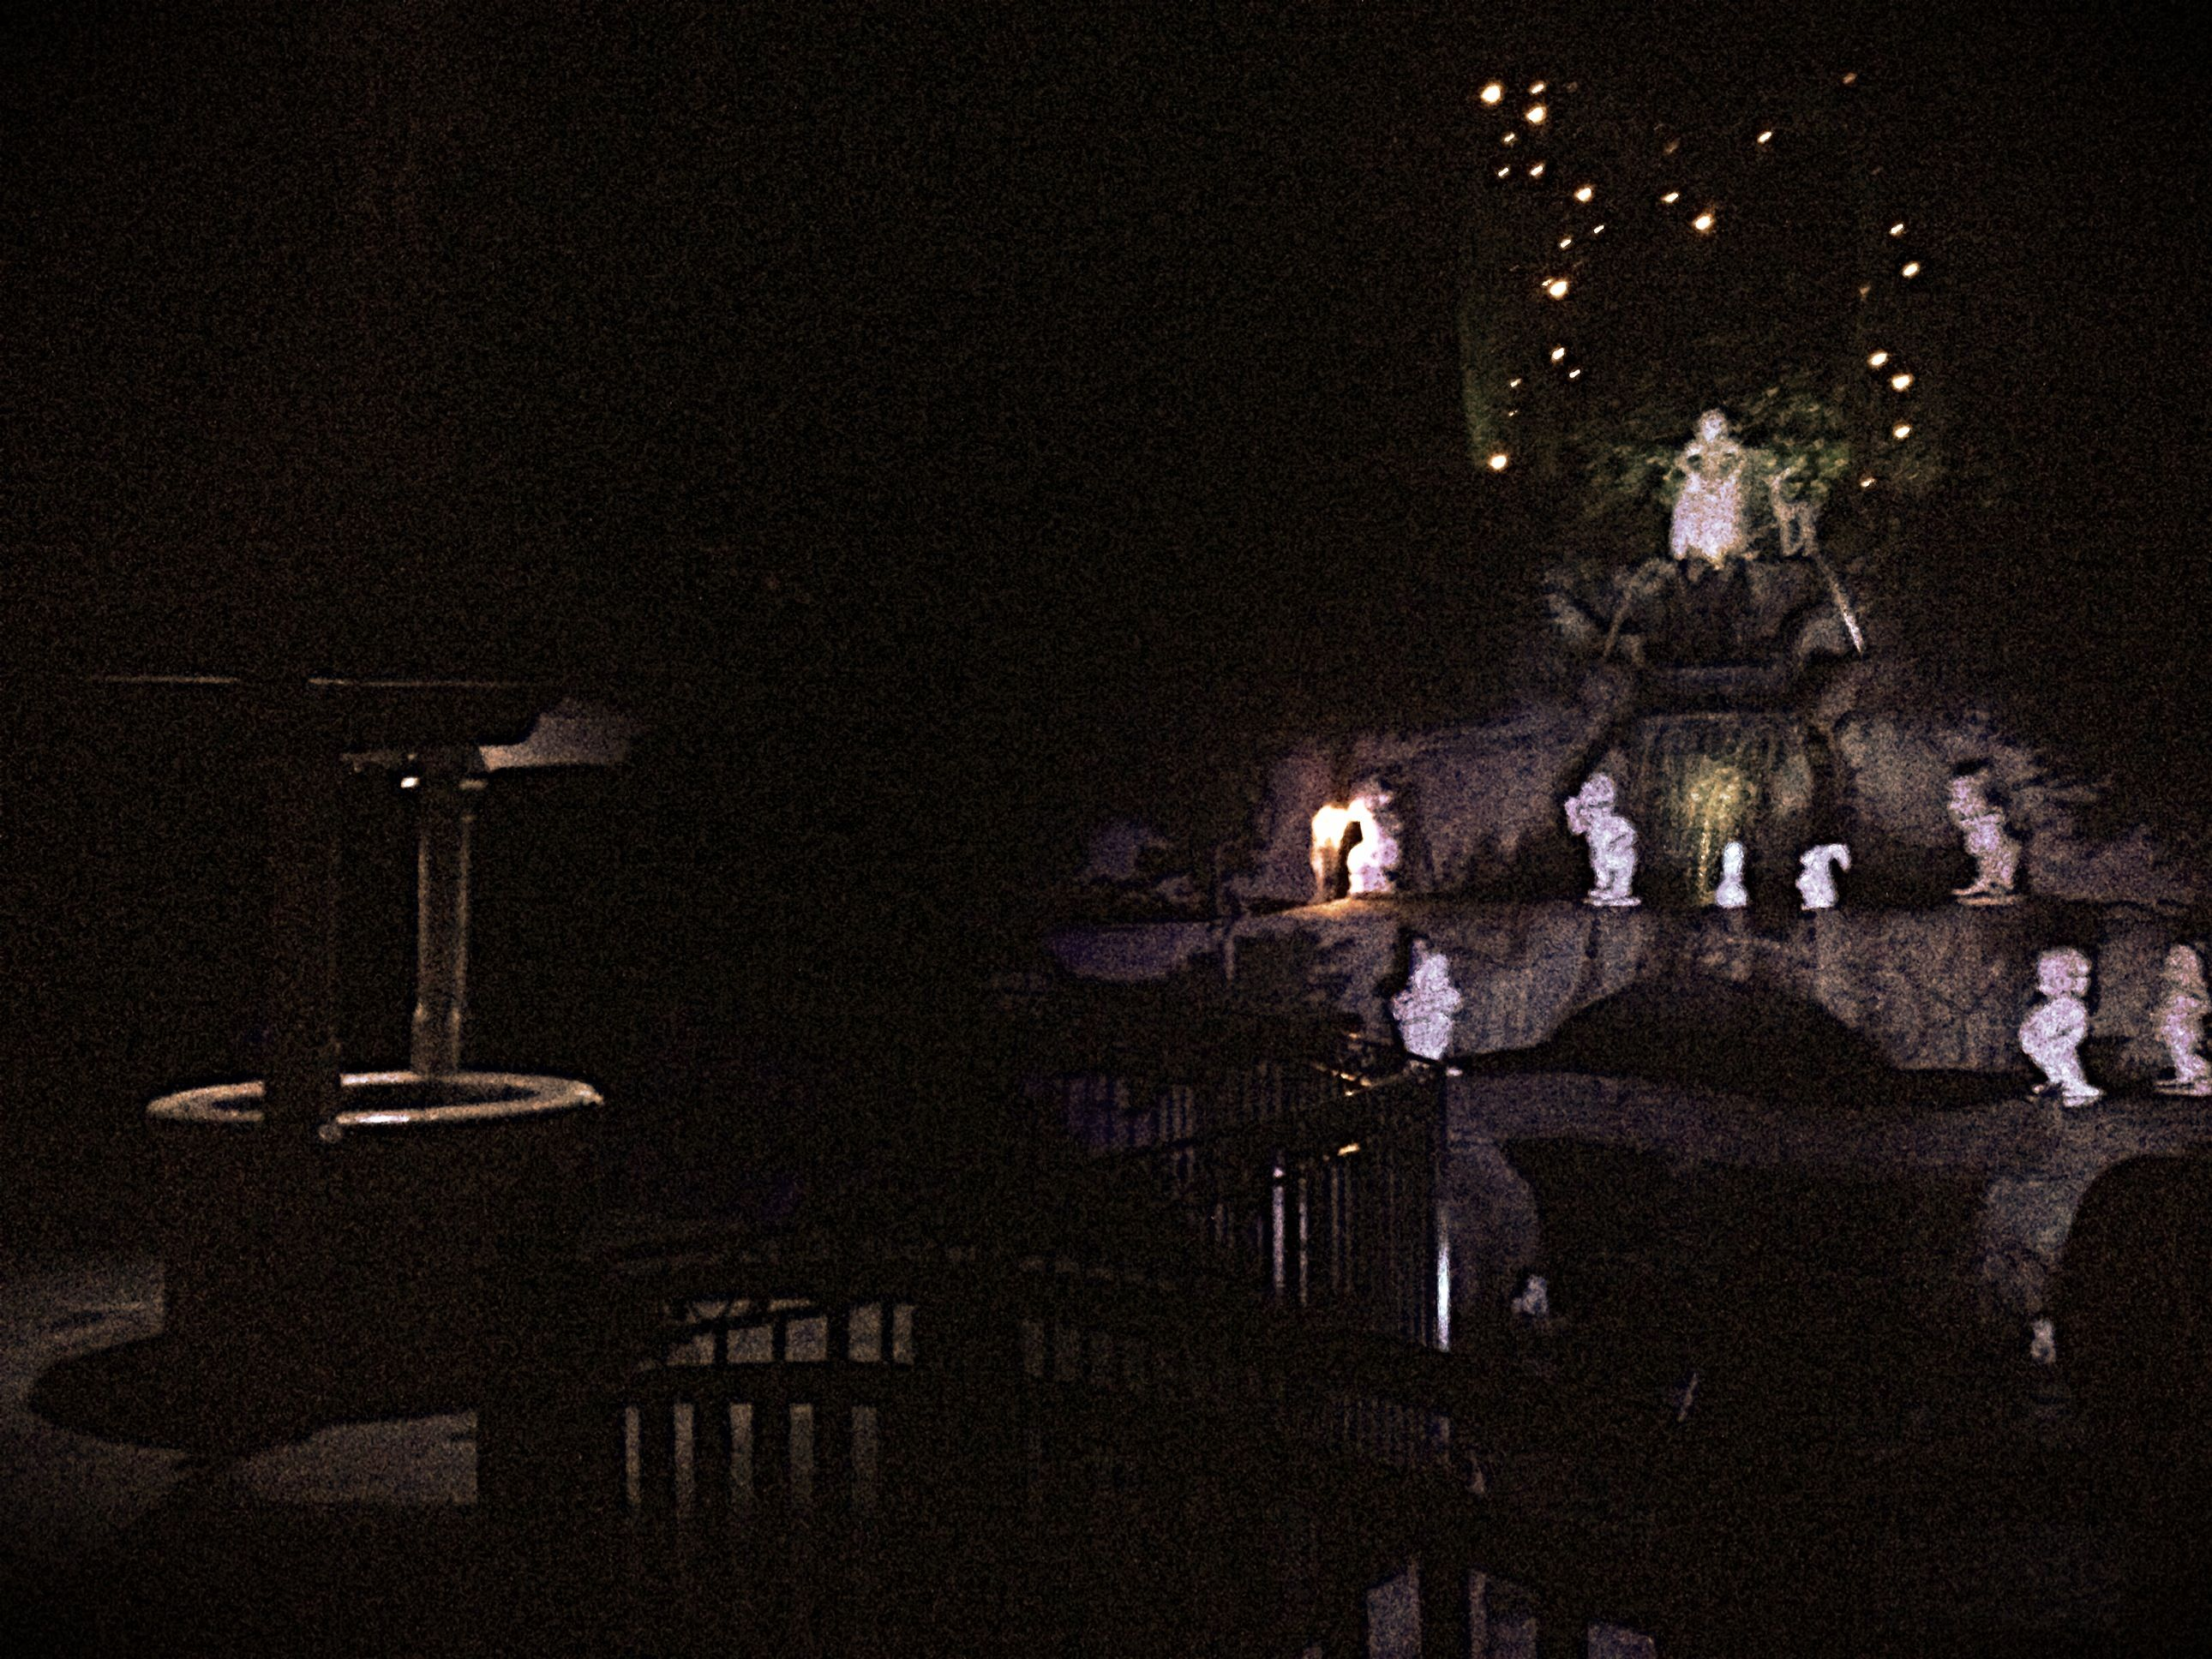 Snow whites wishing well in the dark